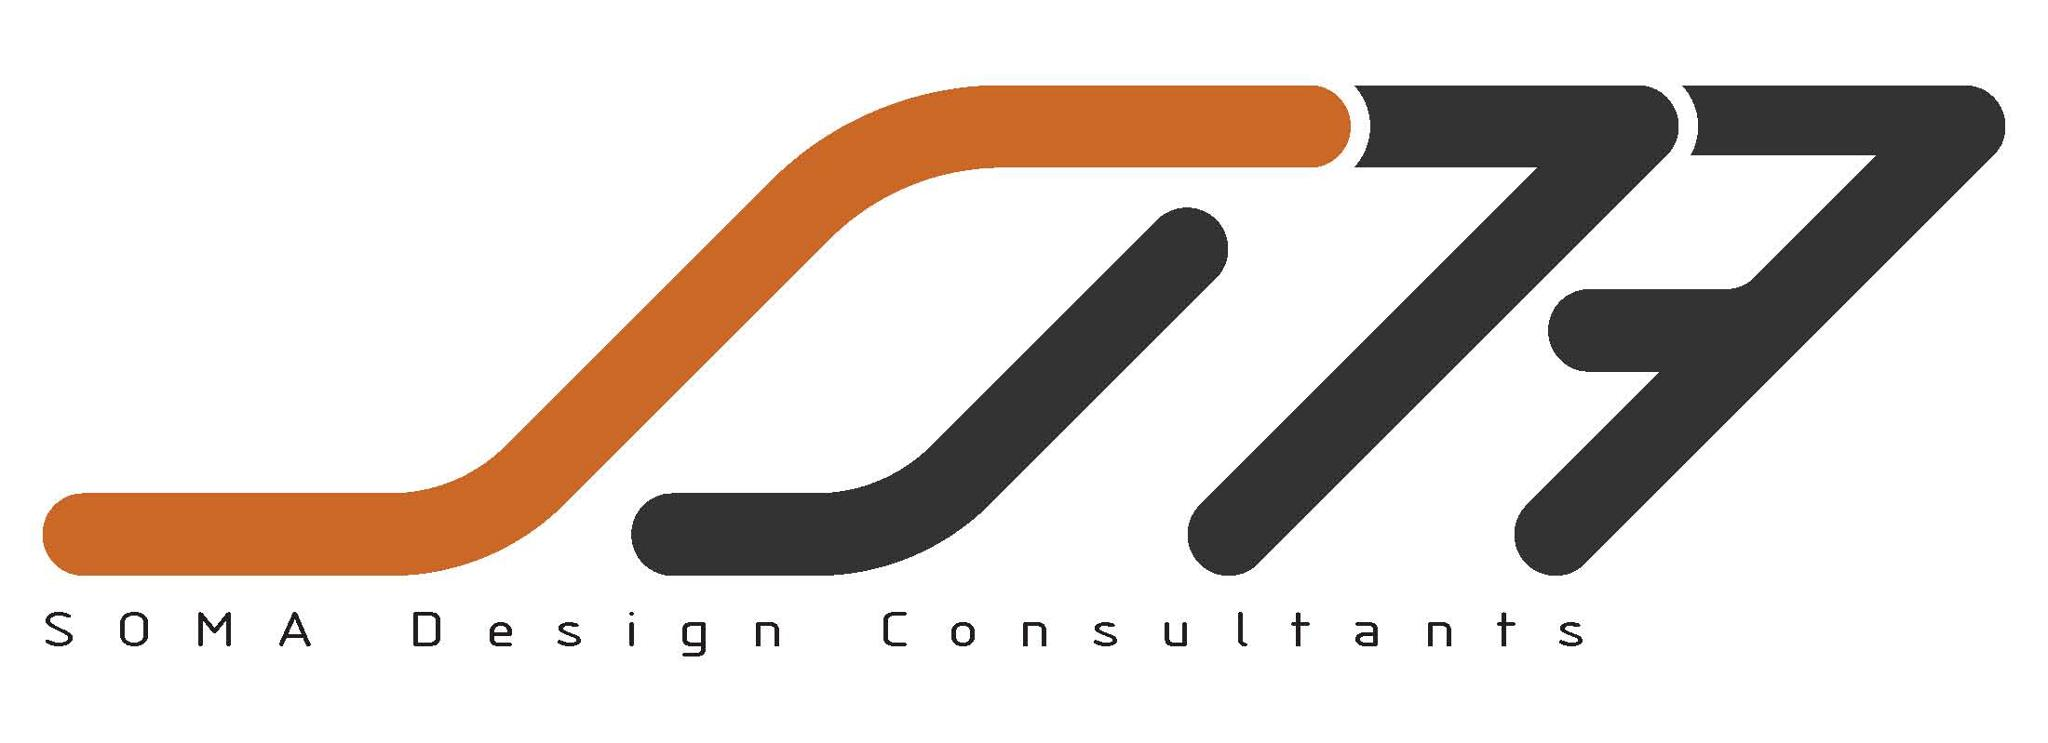 SOMA Design Consultants Inc.